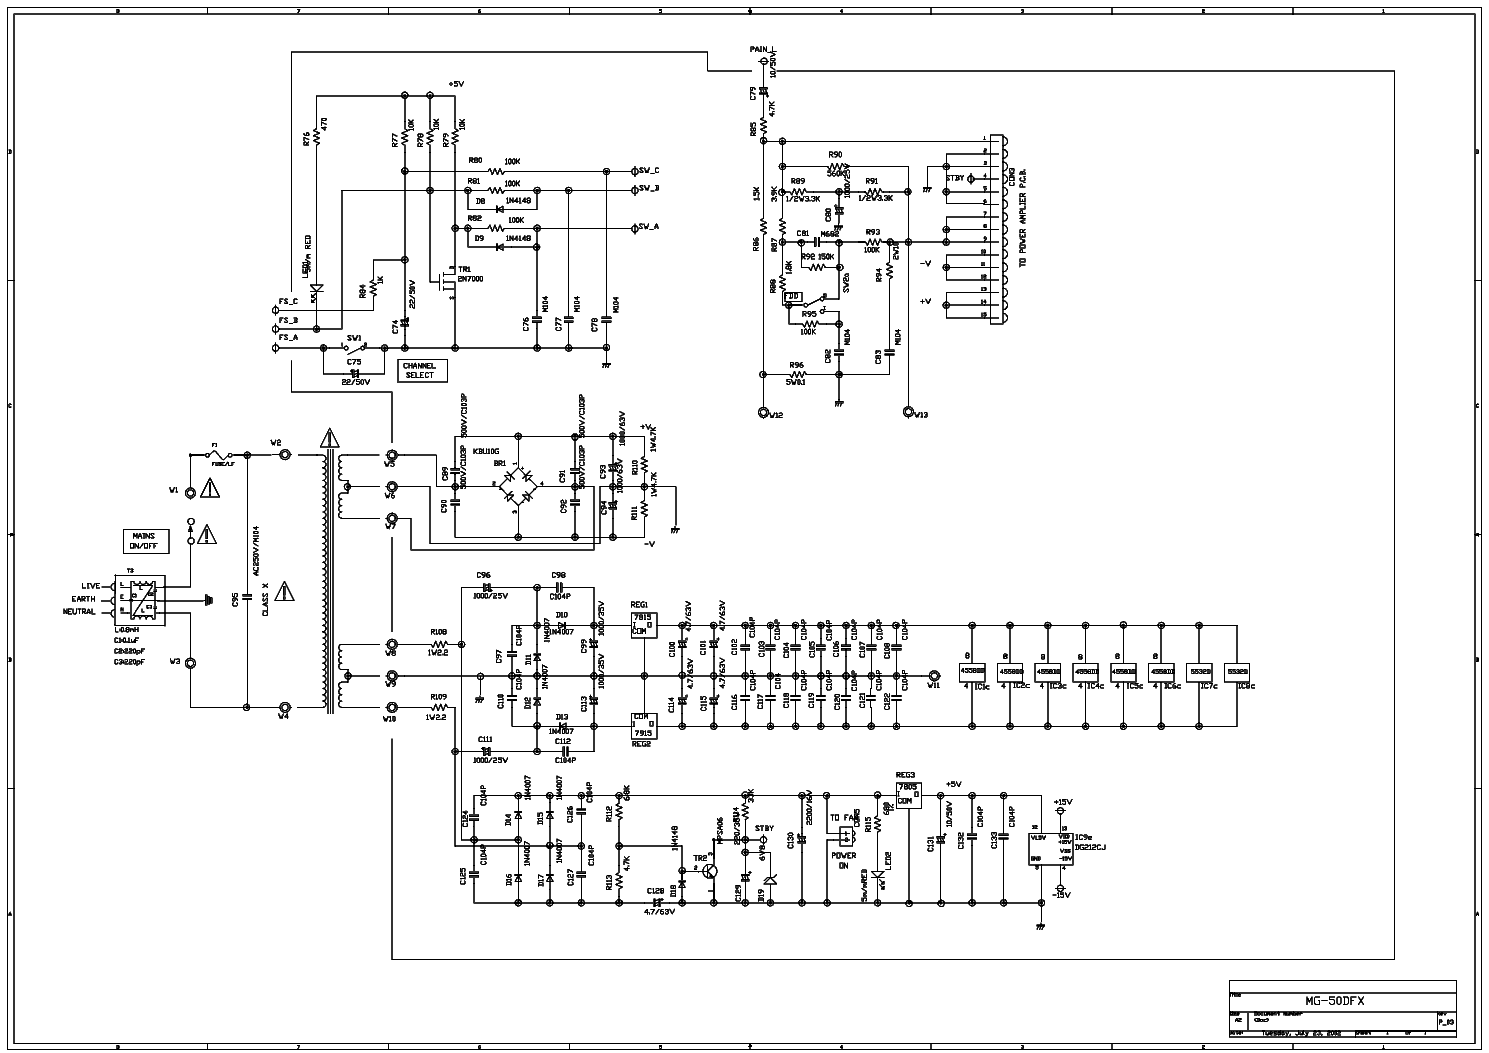 marshall mg50dfx sch service manual (2nd page)